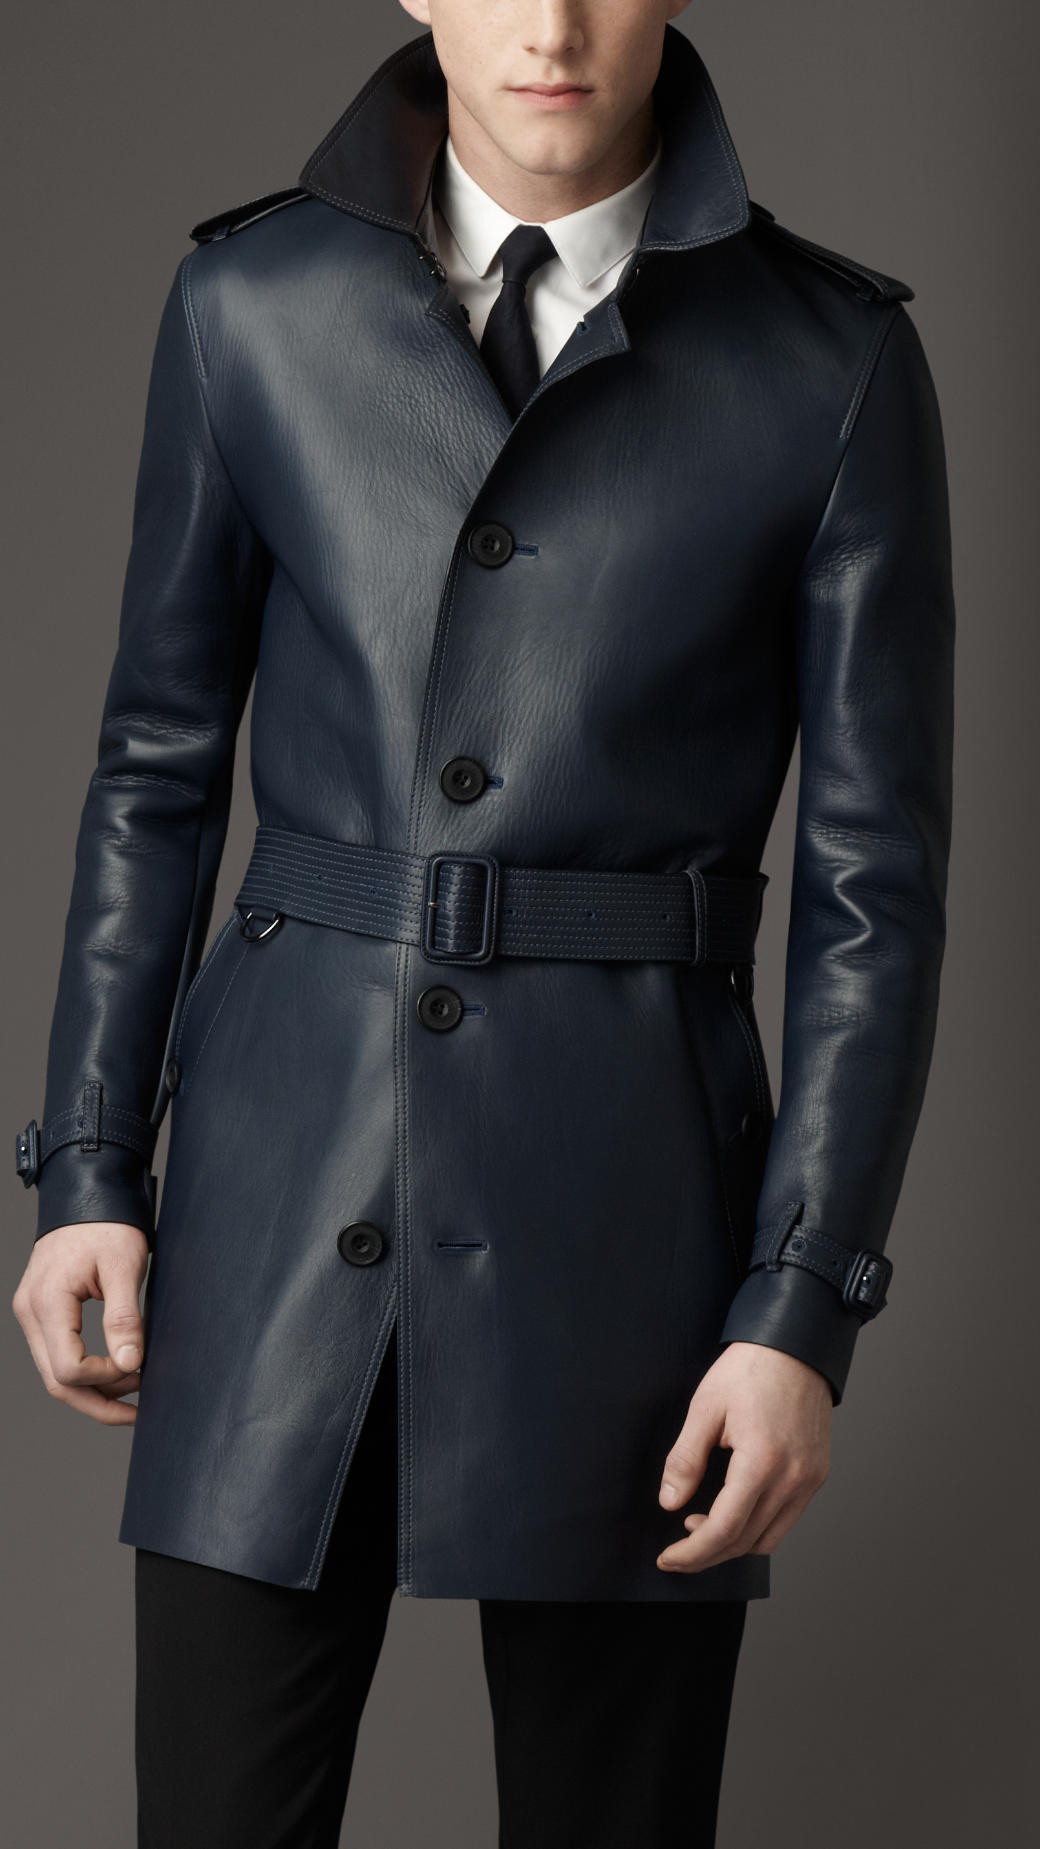 Burberry Midlength Lambskin Leather Trench Coat In Navy